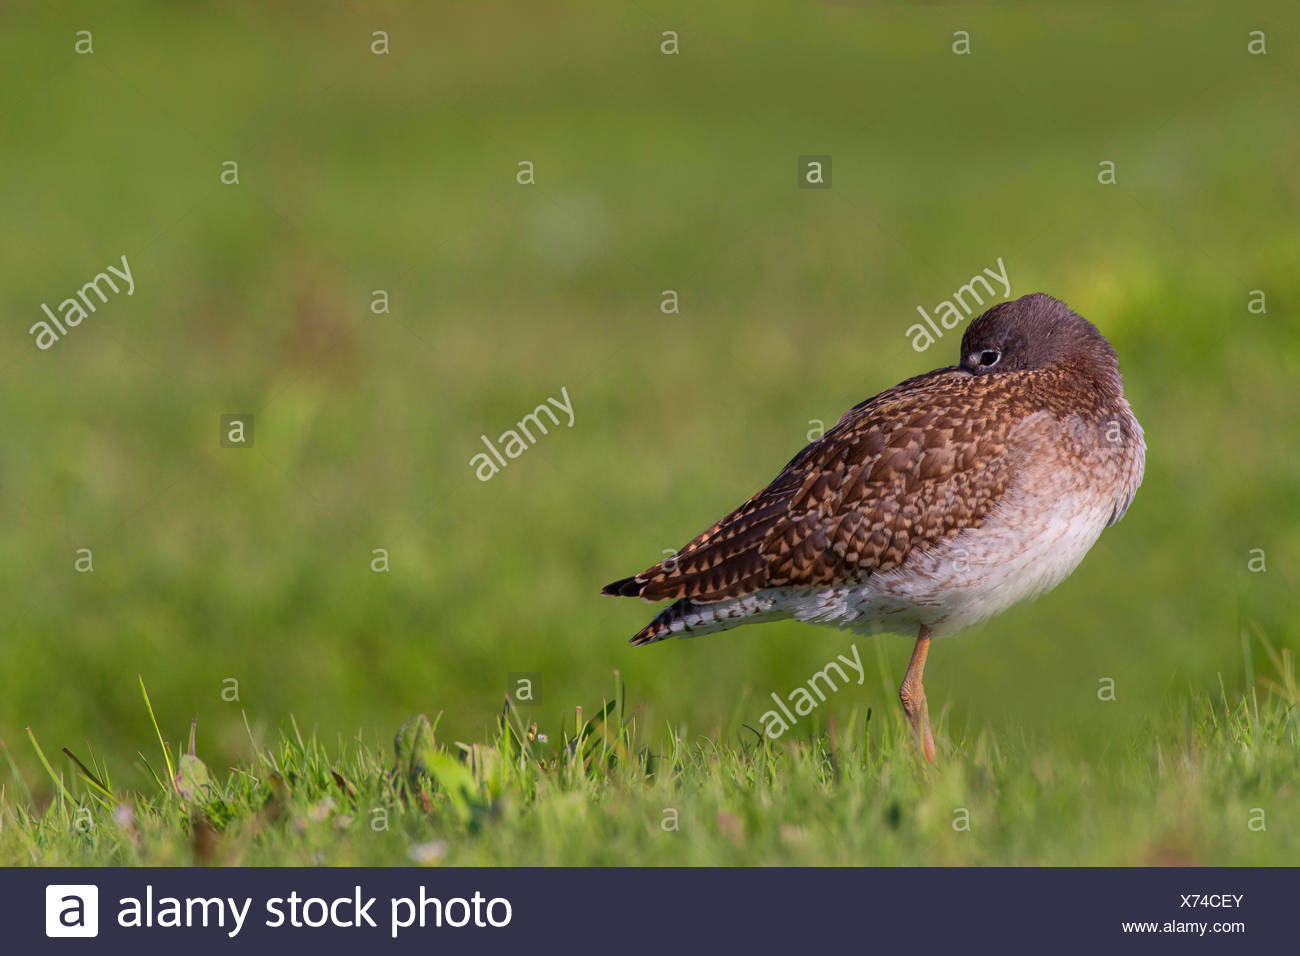 common redshank (Tringa totanus), in eclipse plumage in a meadow, rest and sleep, Germany, Schleswig-Holstein - Stock Image